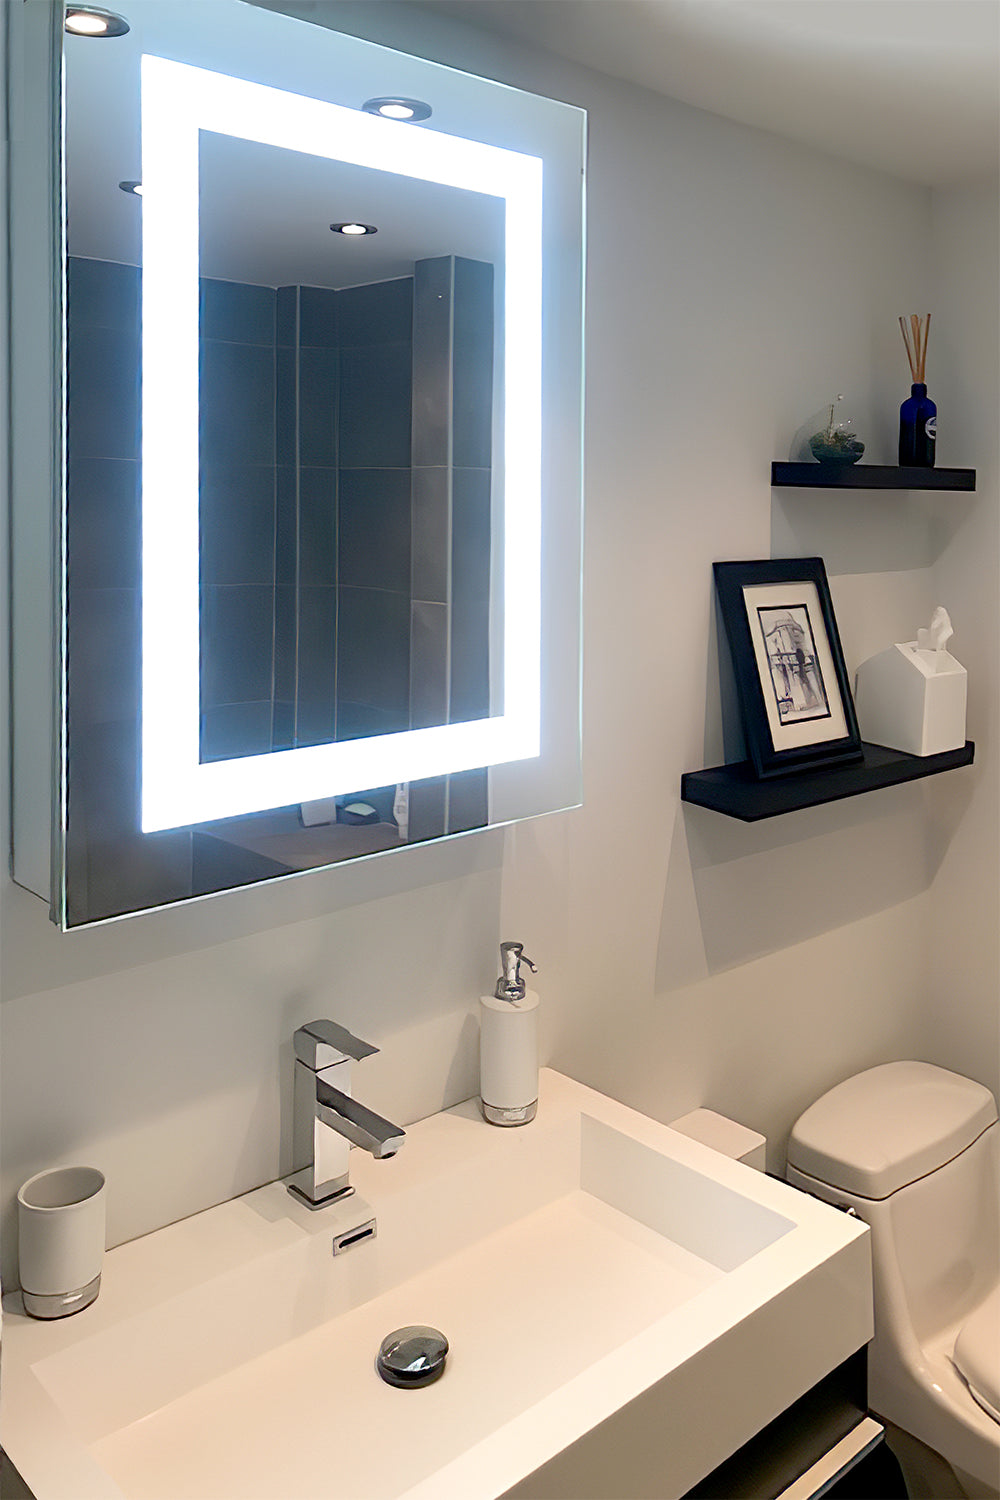 Surface Mounted Led Medicine Cabinet 24 X 32 Left Hinge 6000k Mirrors Marble